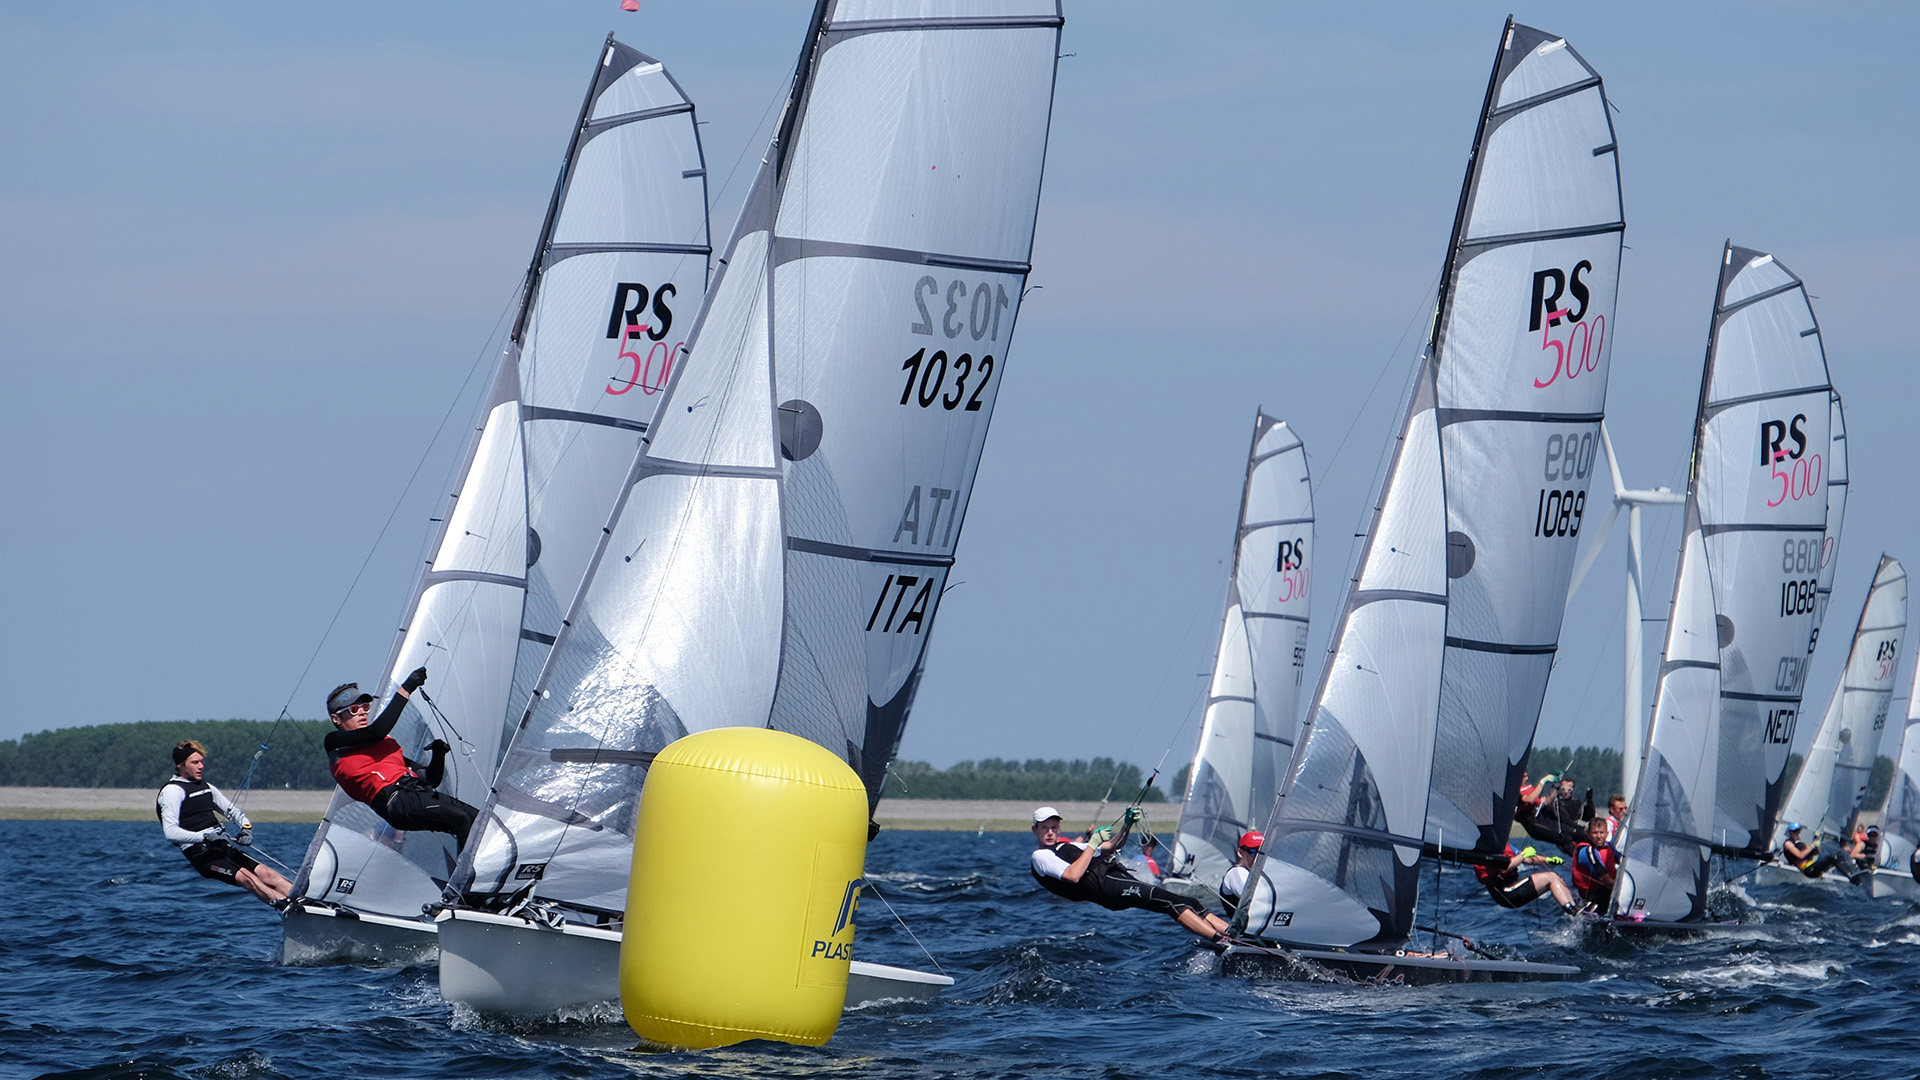 rs500 u2013 international double hander with gennaker trapeze and